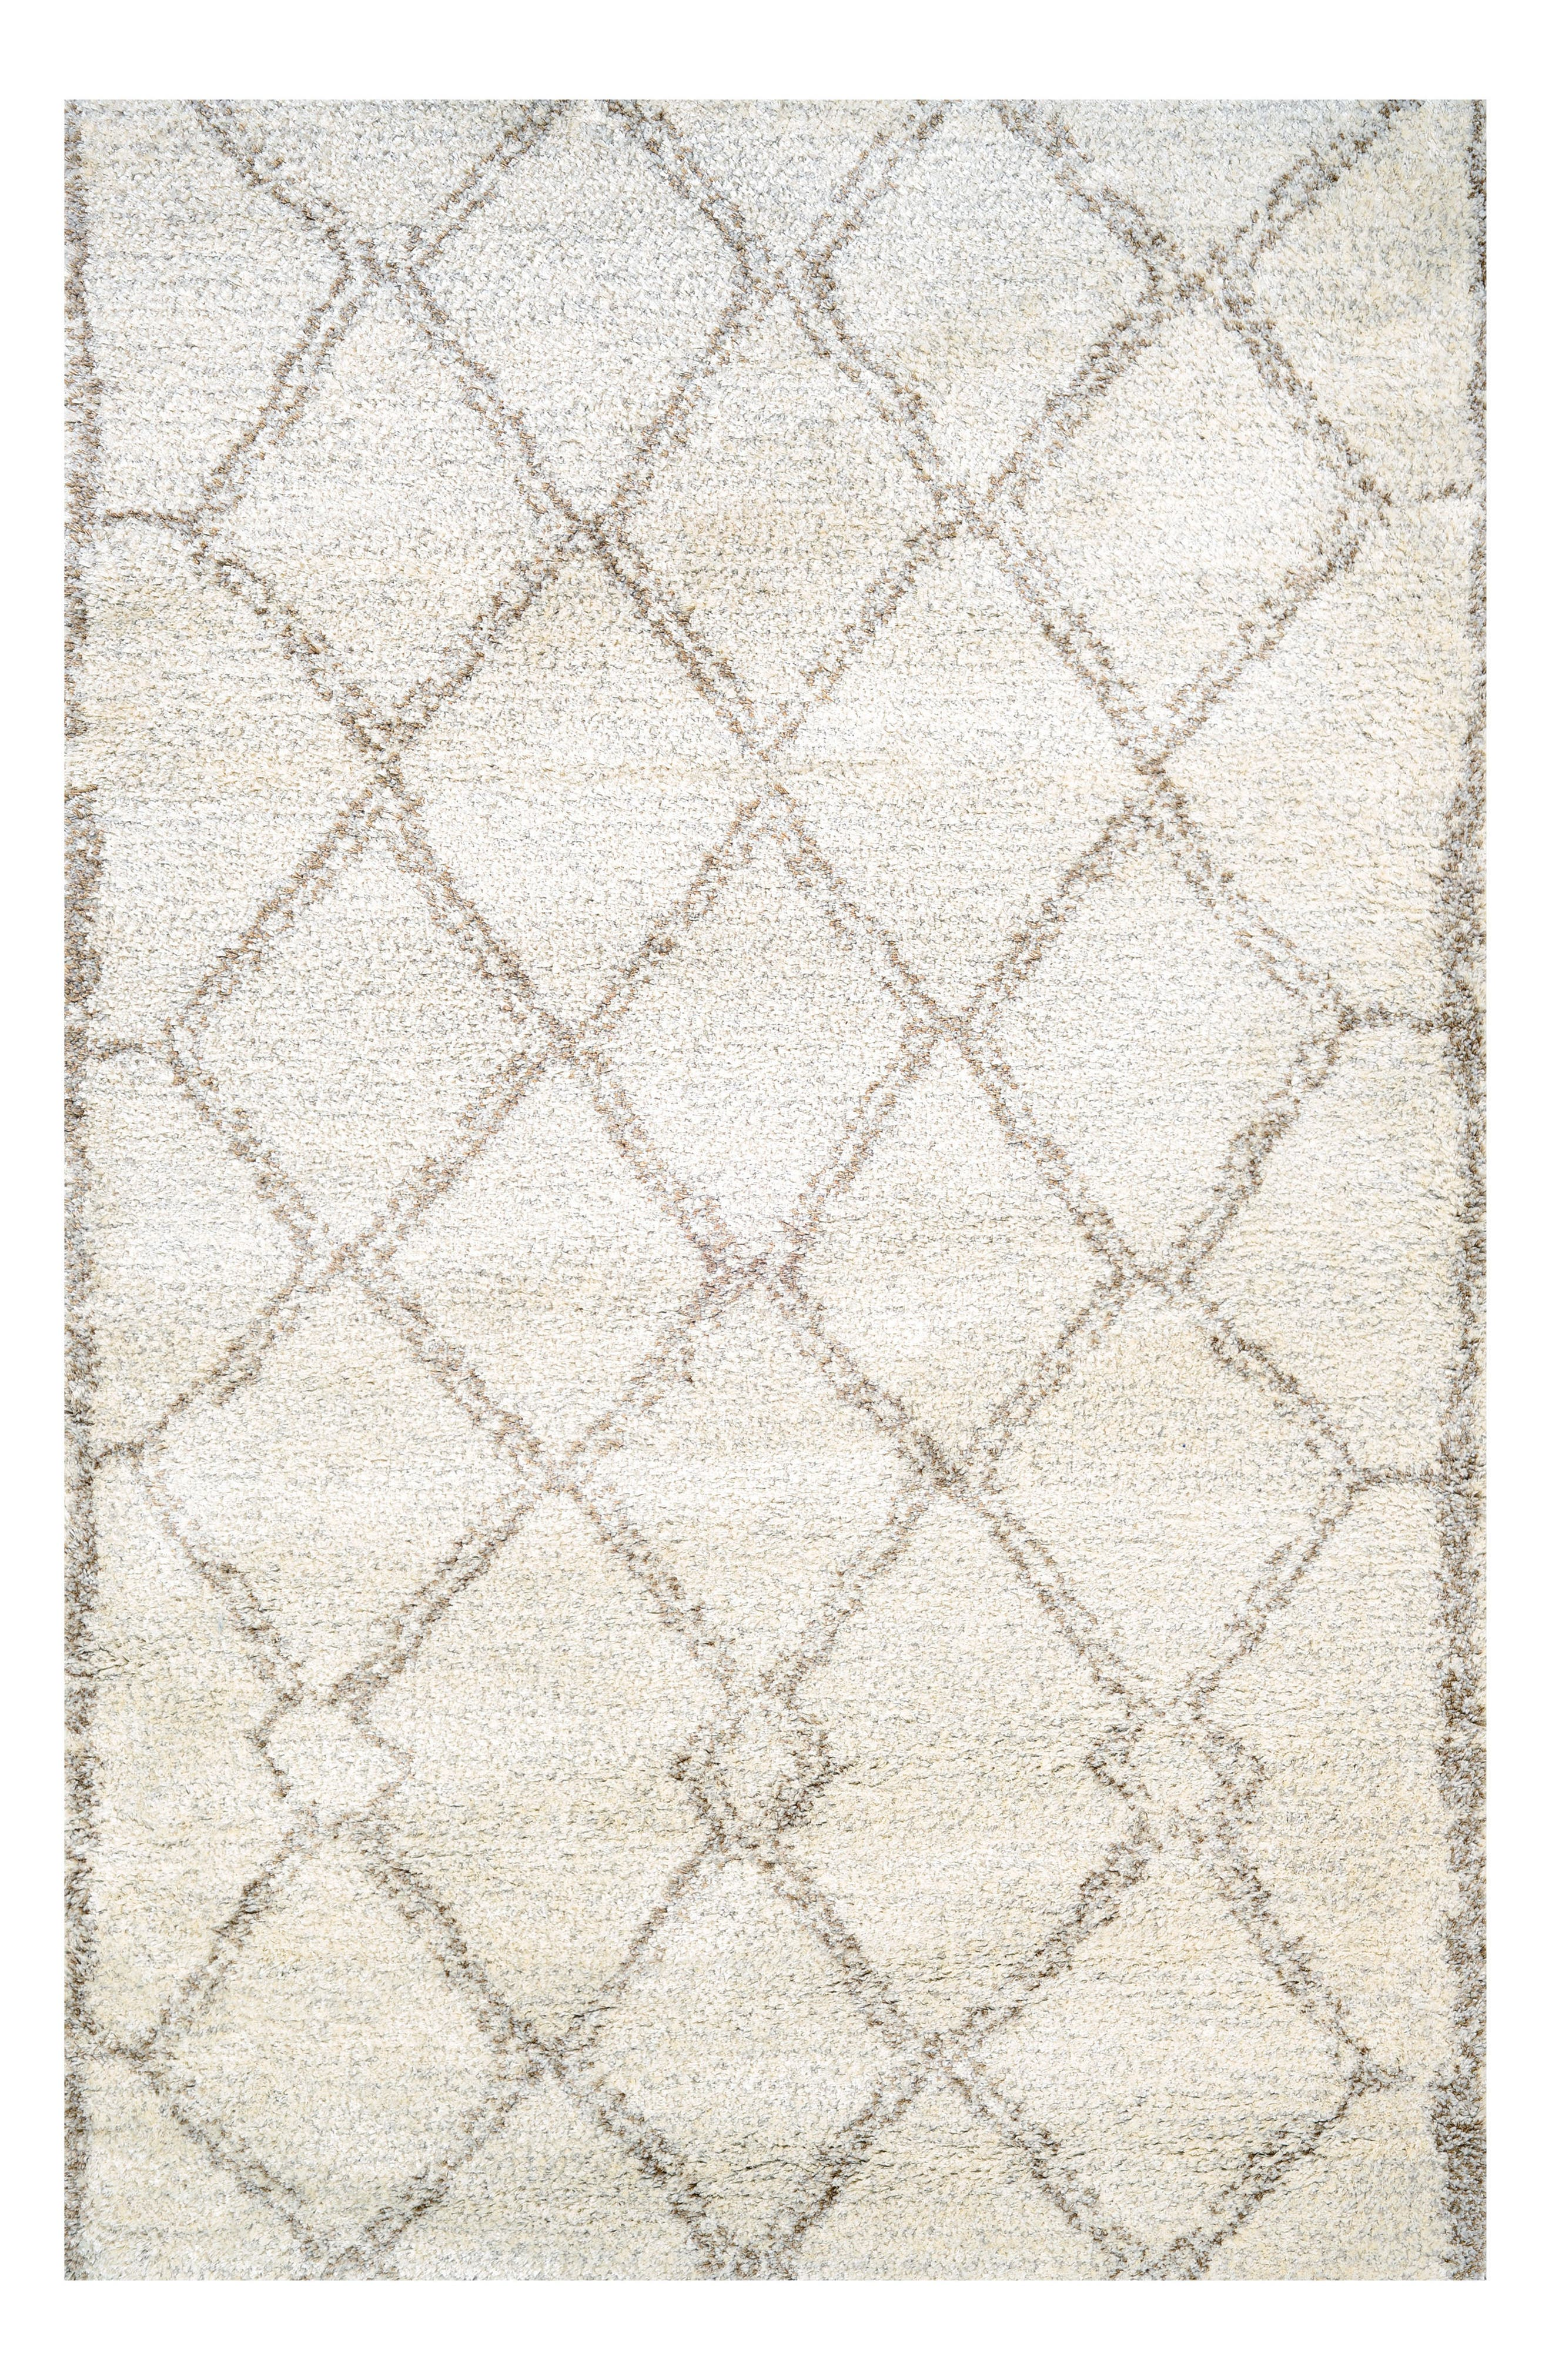 Snowflake Area Rug,                         Main,                         color, Light Beige